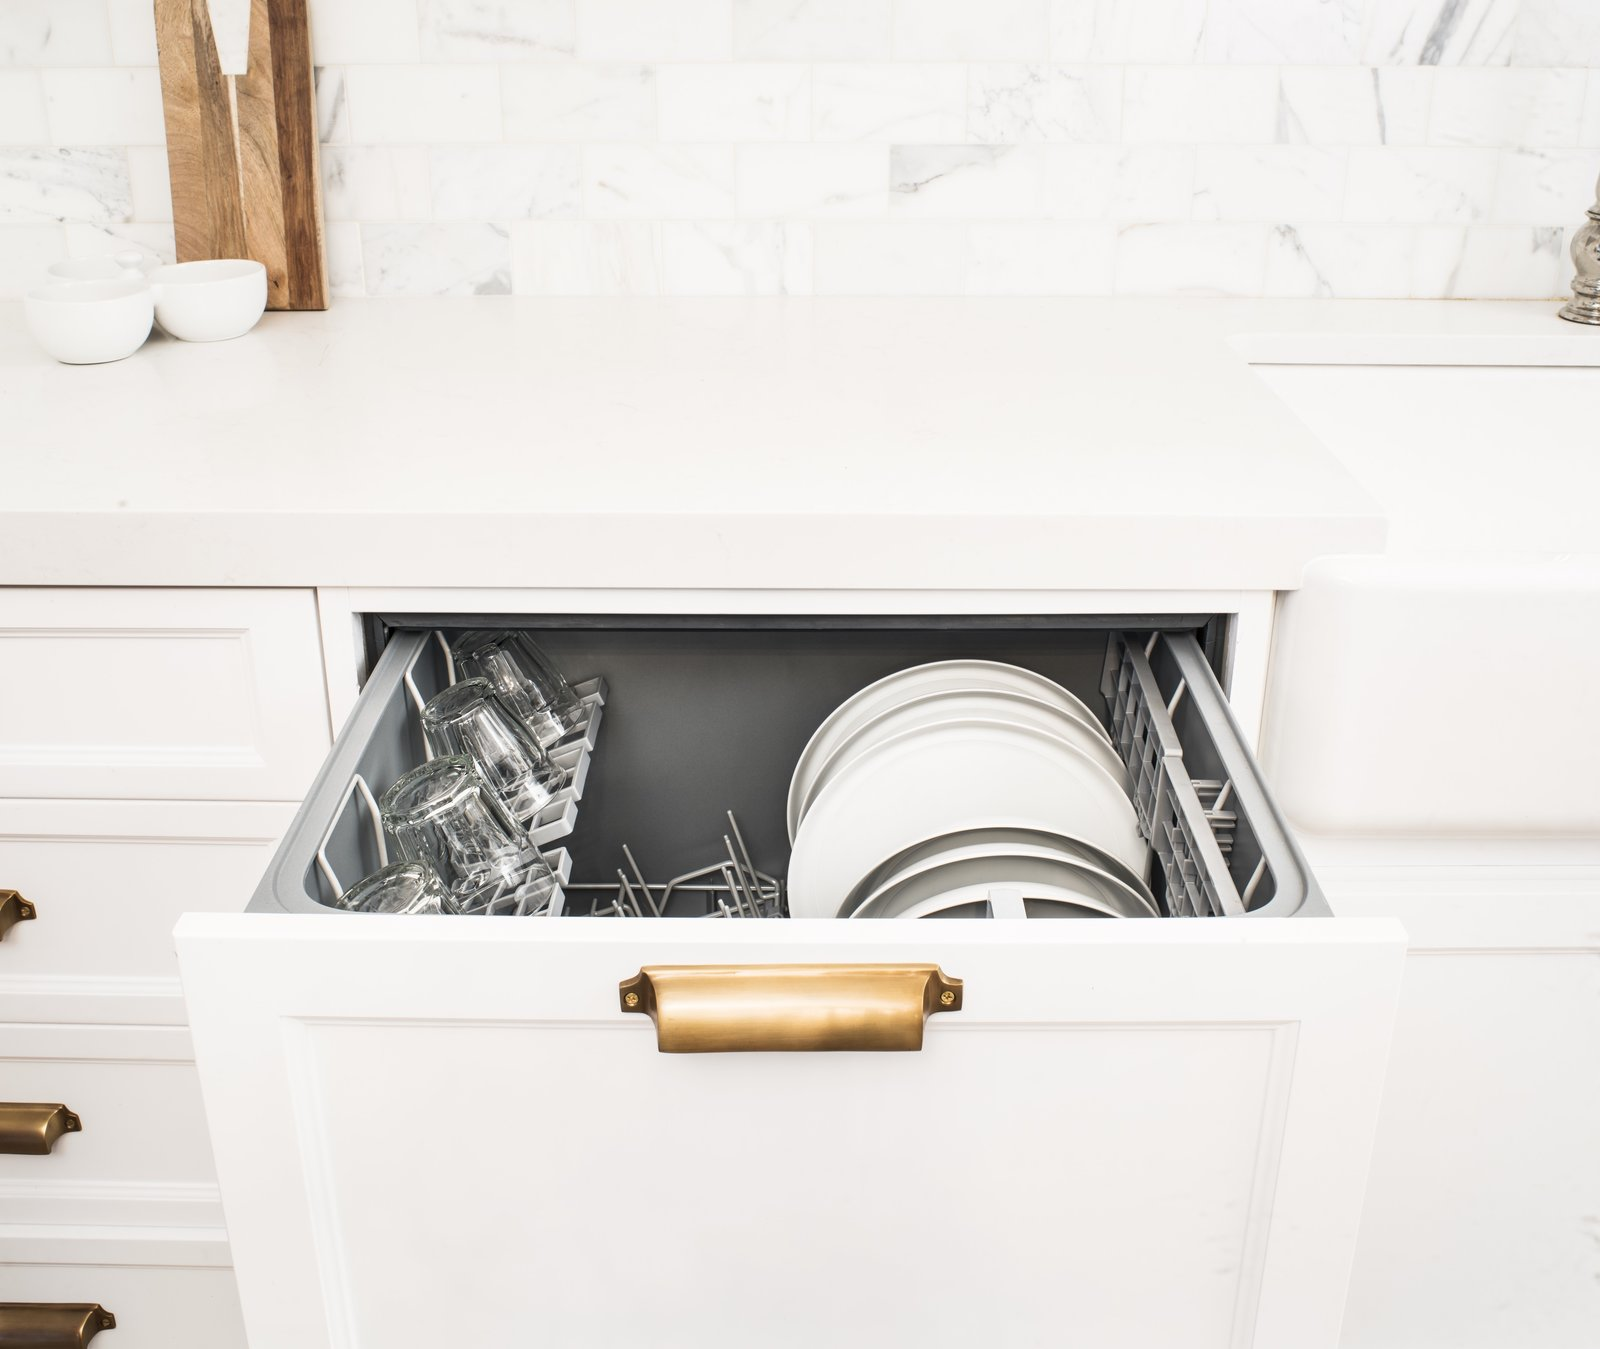 Nine wash cycles vary from delicate to heavy duty; a flow-through detergent dispenser and 163°F water help sanitize dishes.  Photo 6 of 8 in An Interior Designer's Streamlined Kitchen